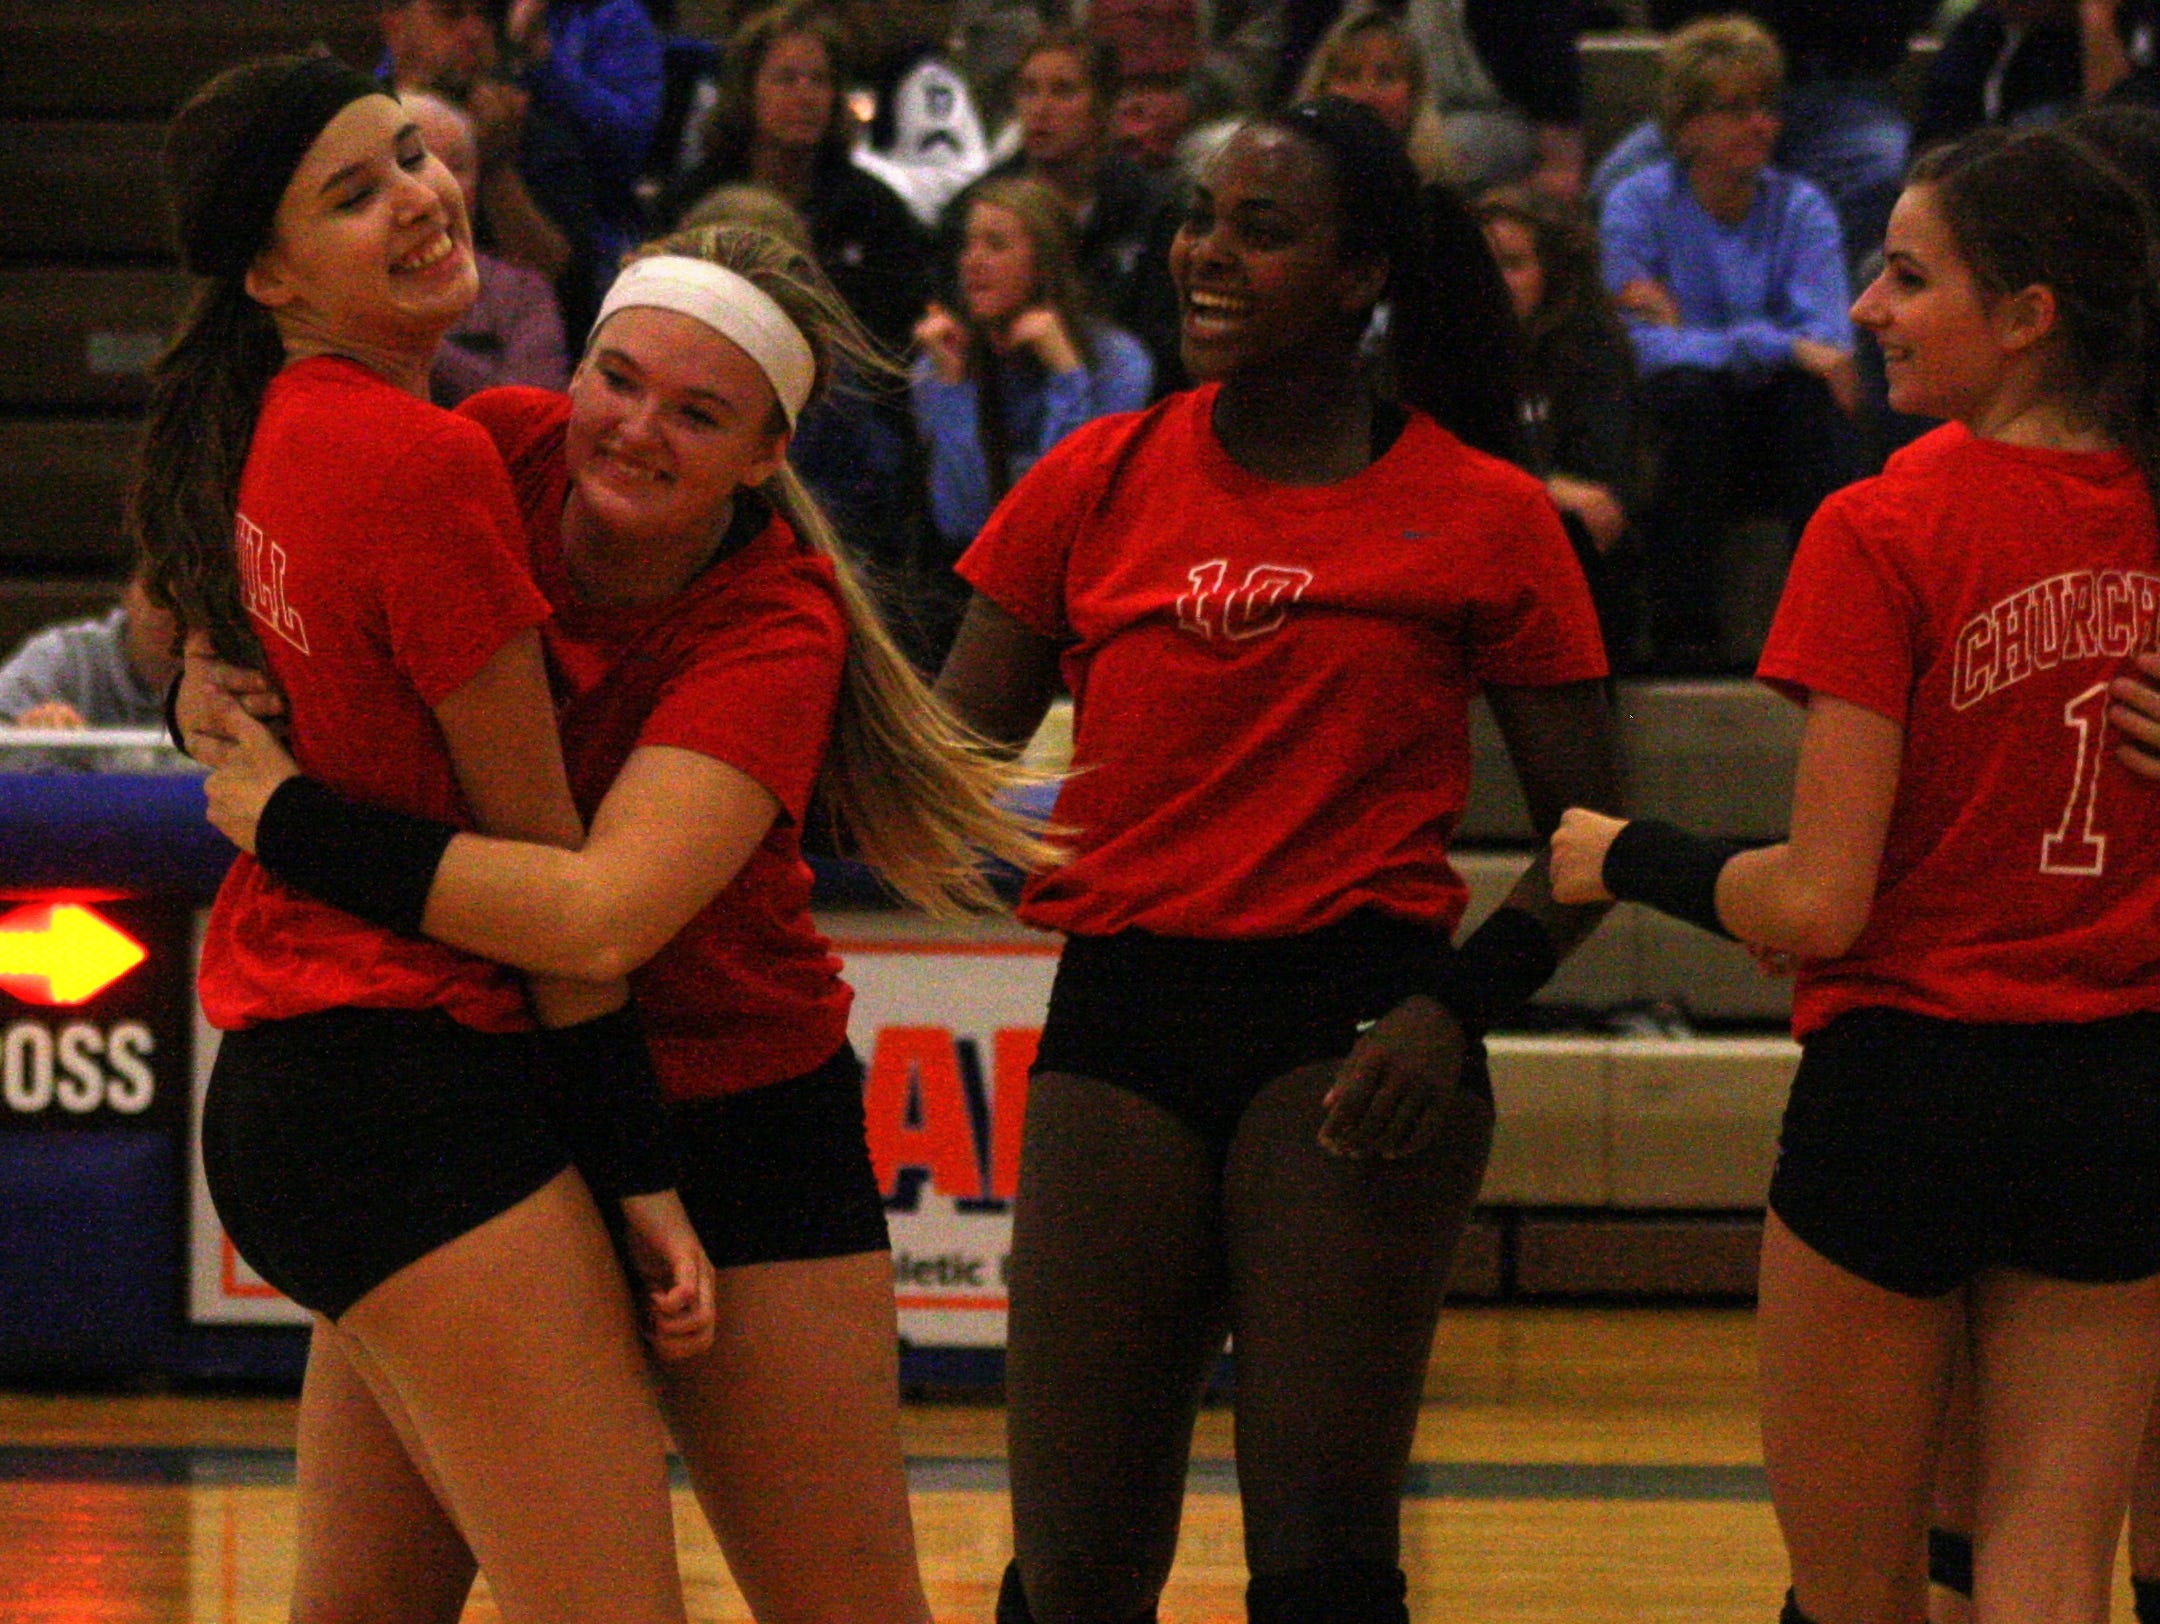 Livonia Churchill volleyball players celebrate a big point during Wednesday's match against Stevenson.